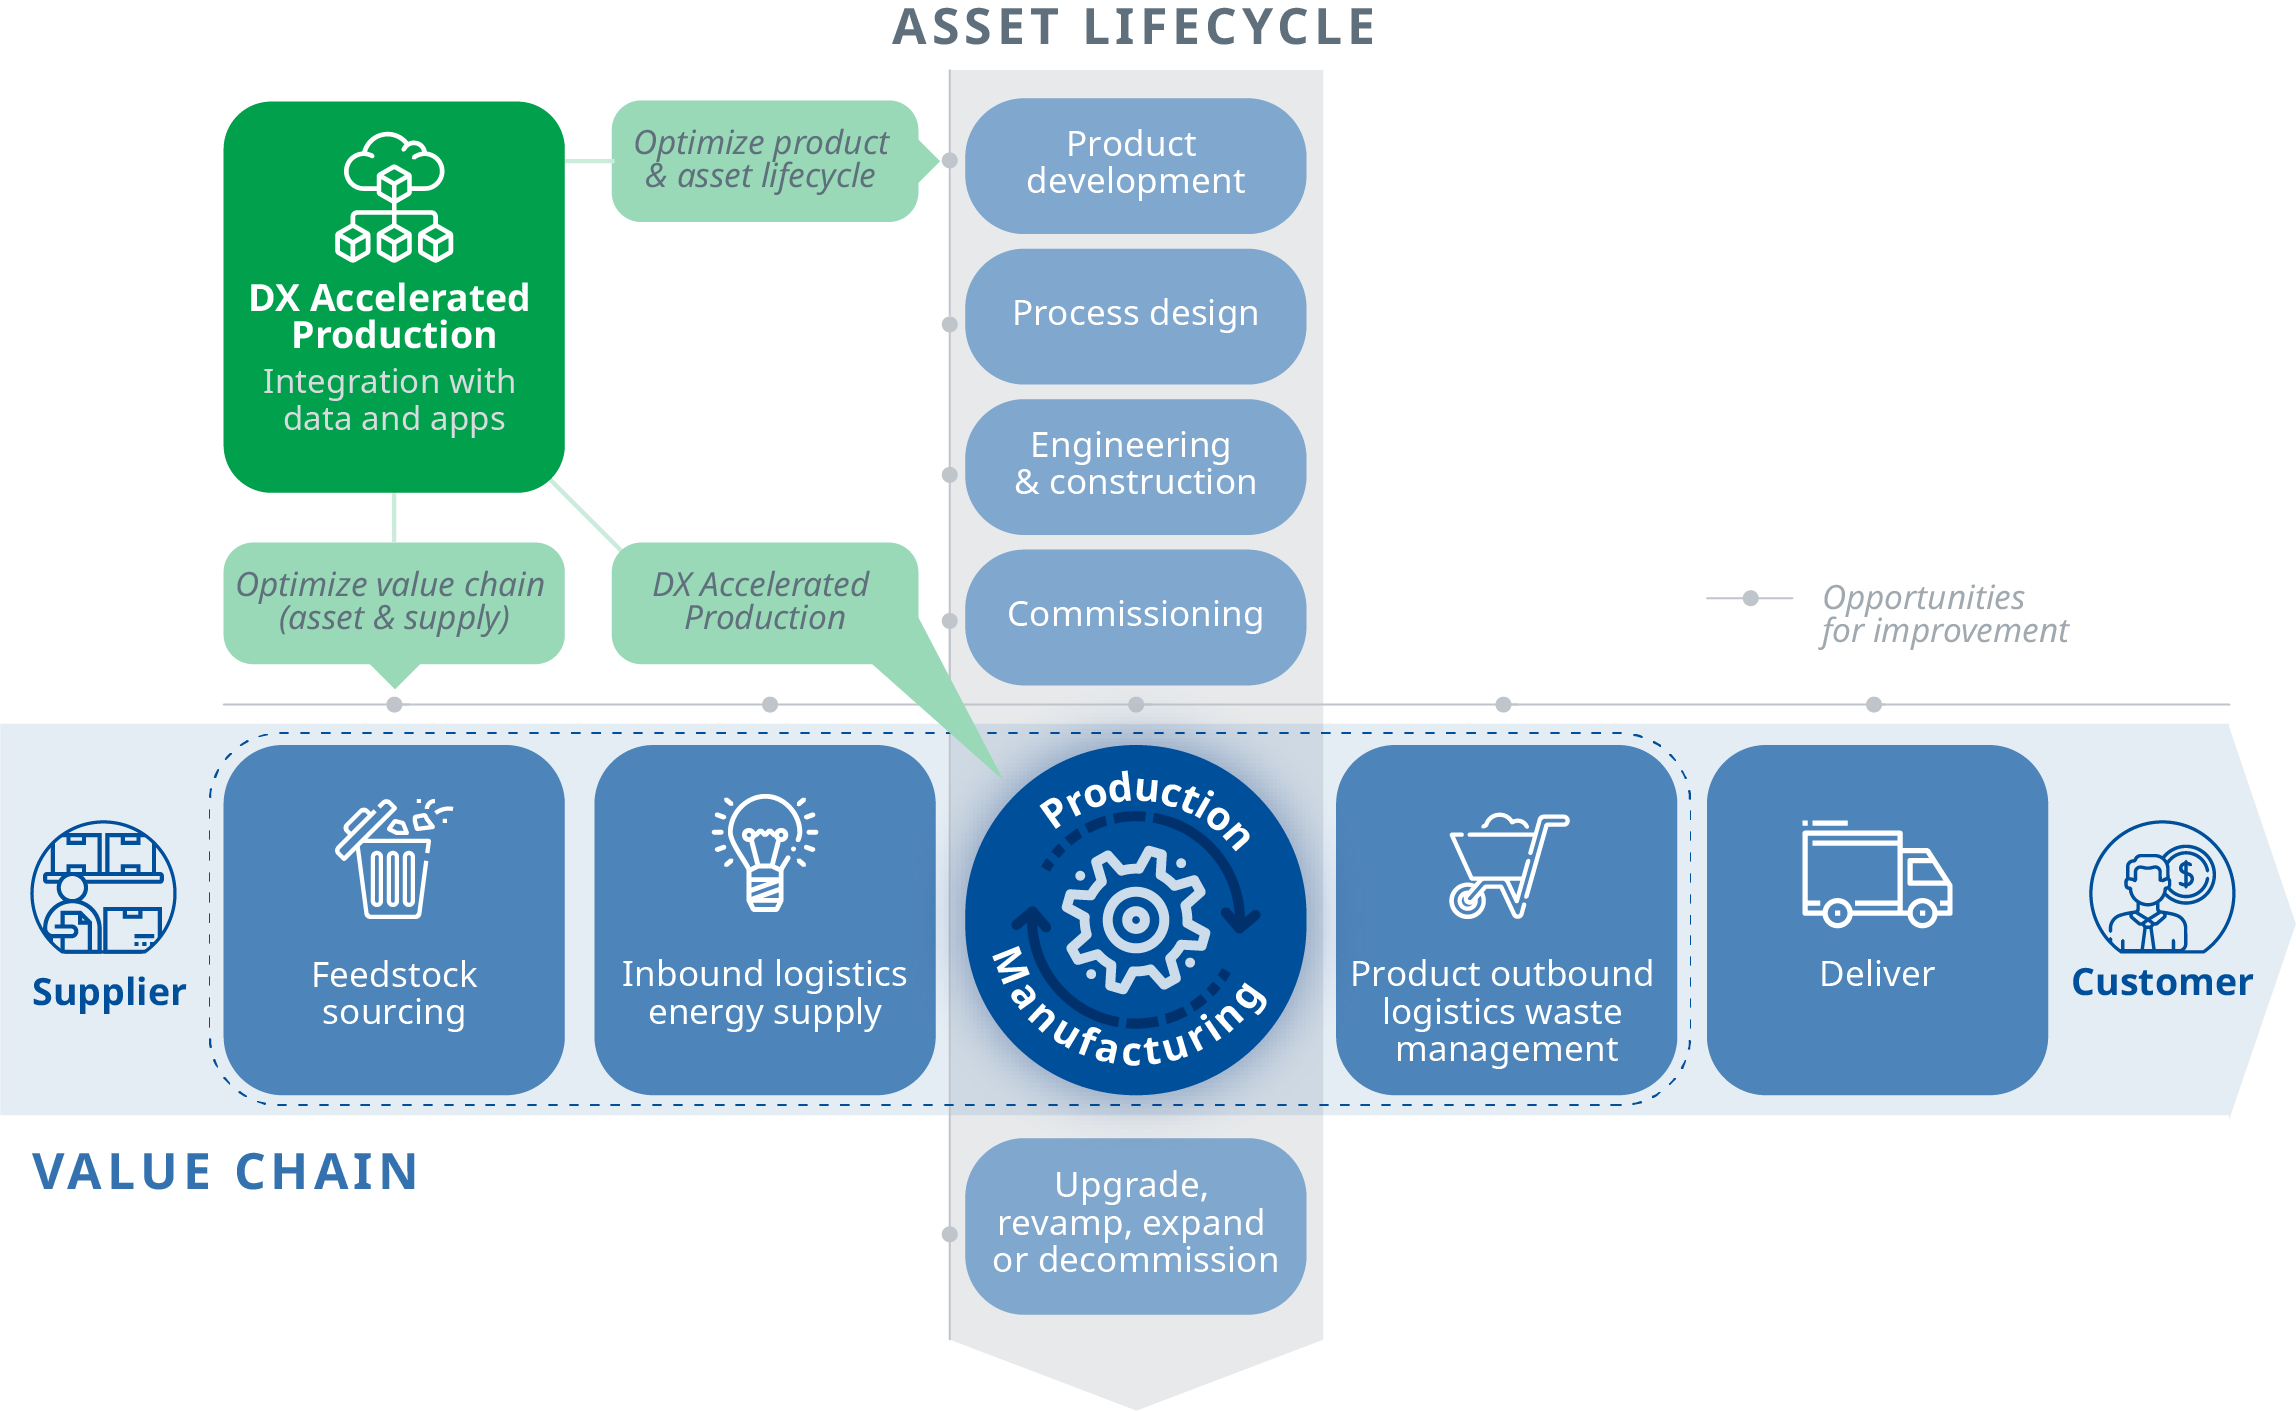 Value Chain to Asset Lifecycle